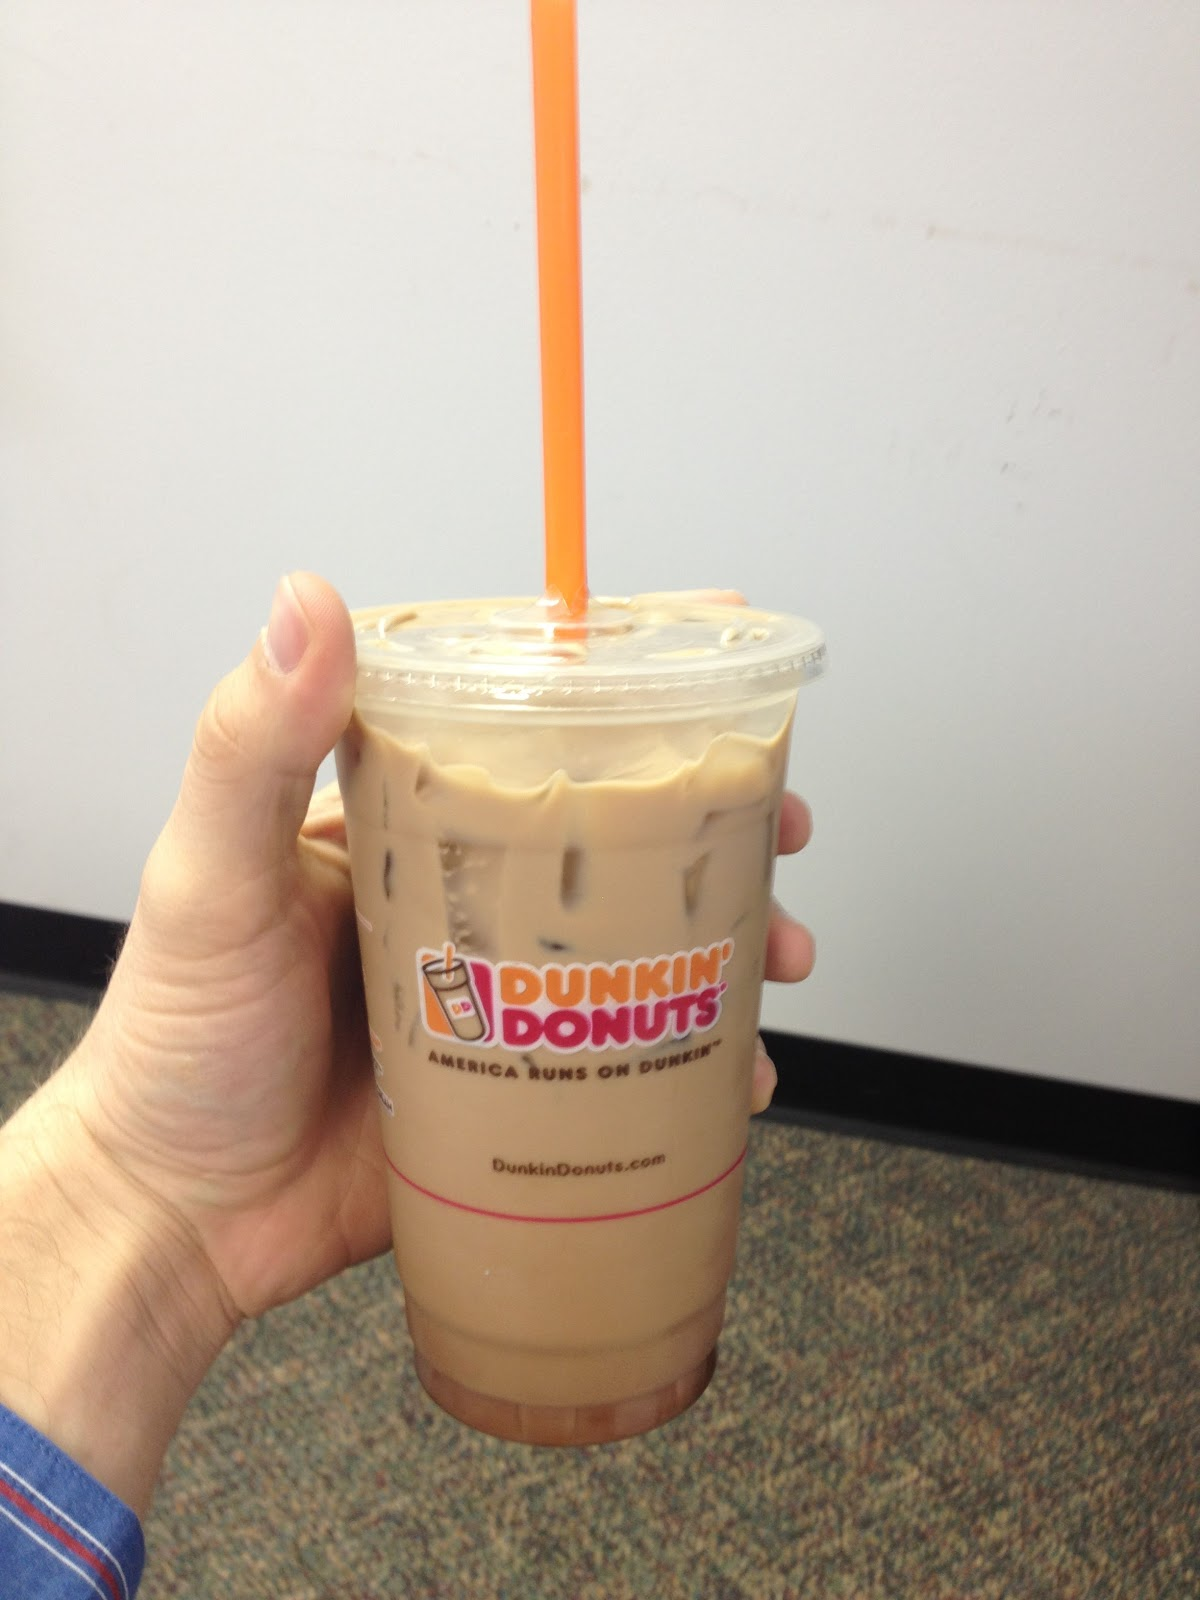 Photo+Feb+23,+1+11+06+PM How Much Is A Small Iced Coffee At Dunkin Donuts